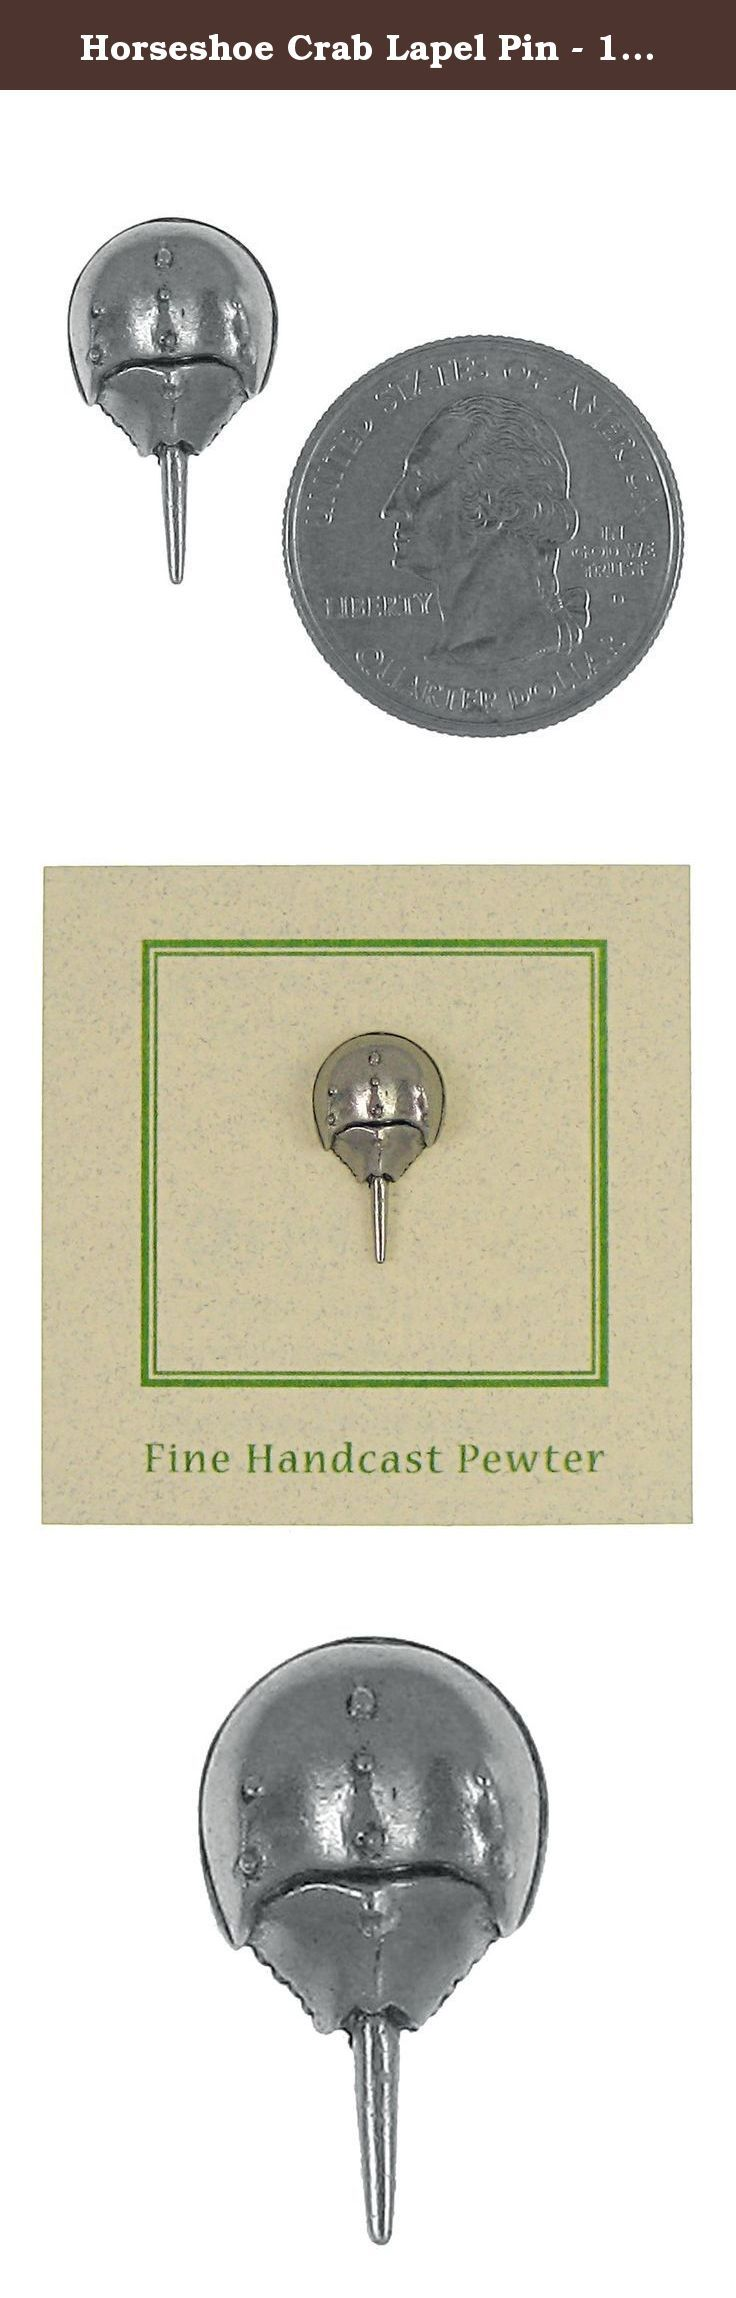 Horseshoe Crab Lapel Pin - 100 Count. Native to the Atlantic coast, from Canada to the Gulf of Mexico, the horseshoe crab is more closely related to the spider than to other crabs. Our horseshoe crab lapel pin is handcast in solid, lead-free pewter. Each of our pins is an original three dimensional sculpture signed by the artist, Jim Clift. It's engraved and raised details make this a lifelike rendition of the real thing! Handcrafted in our studio in Coventry, RI, our pins are 100% US made.